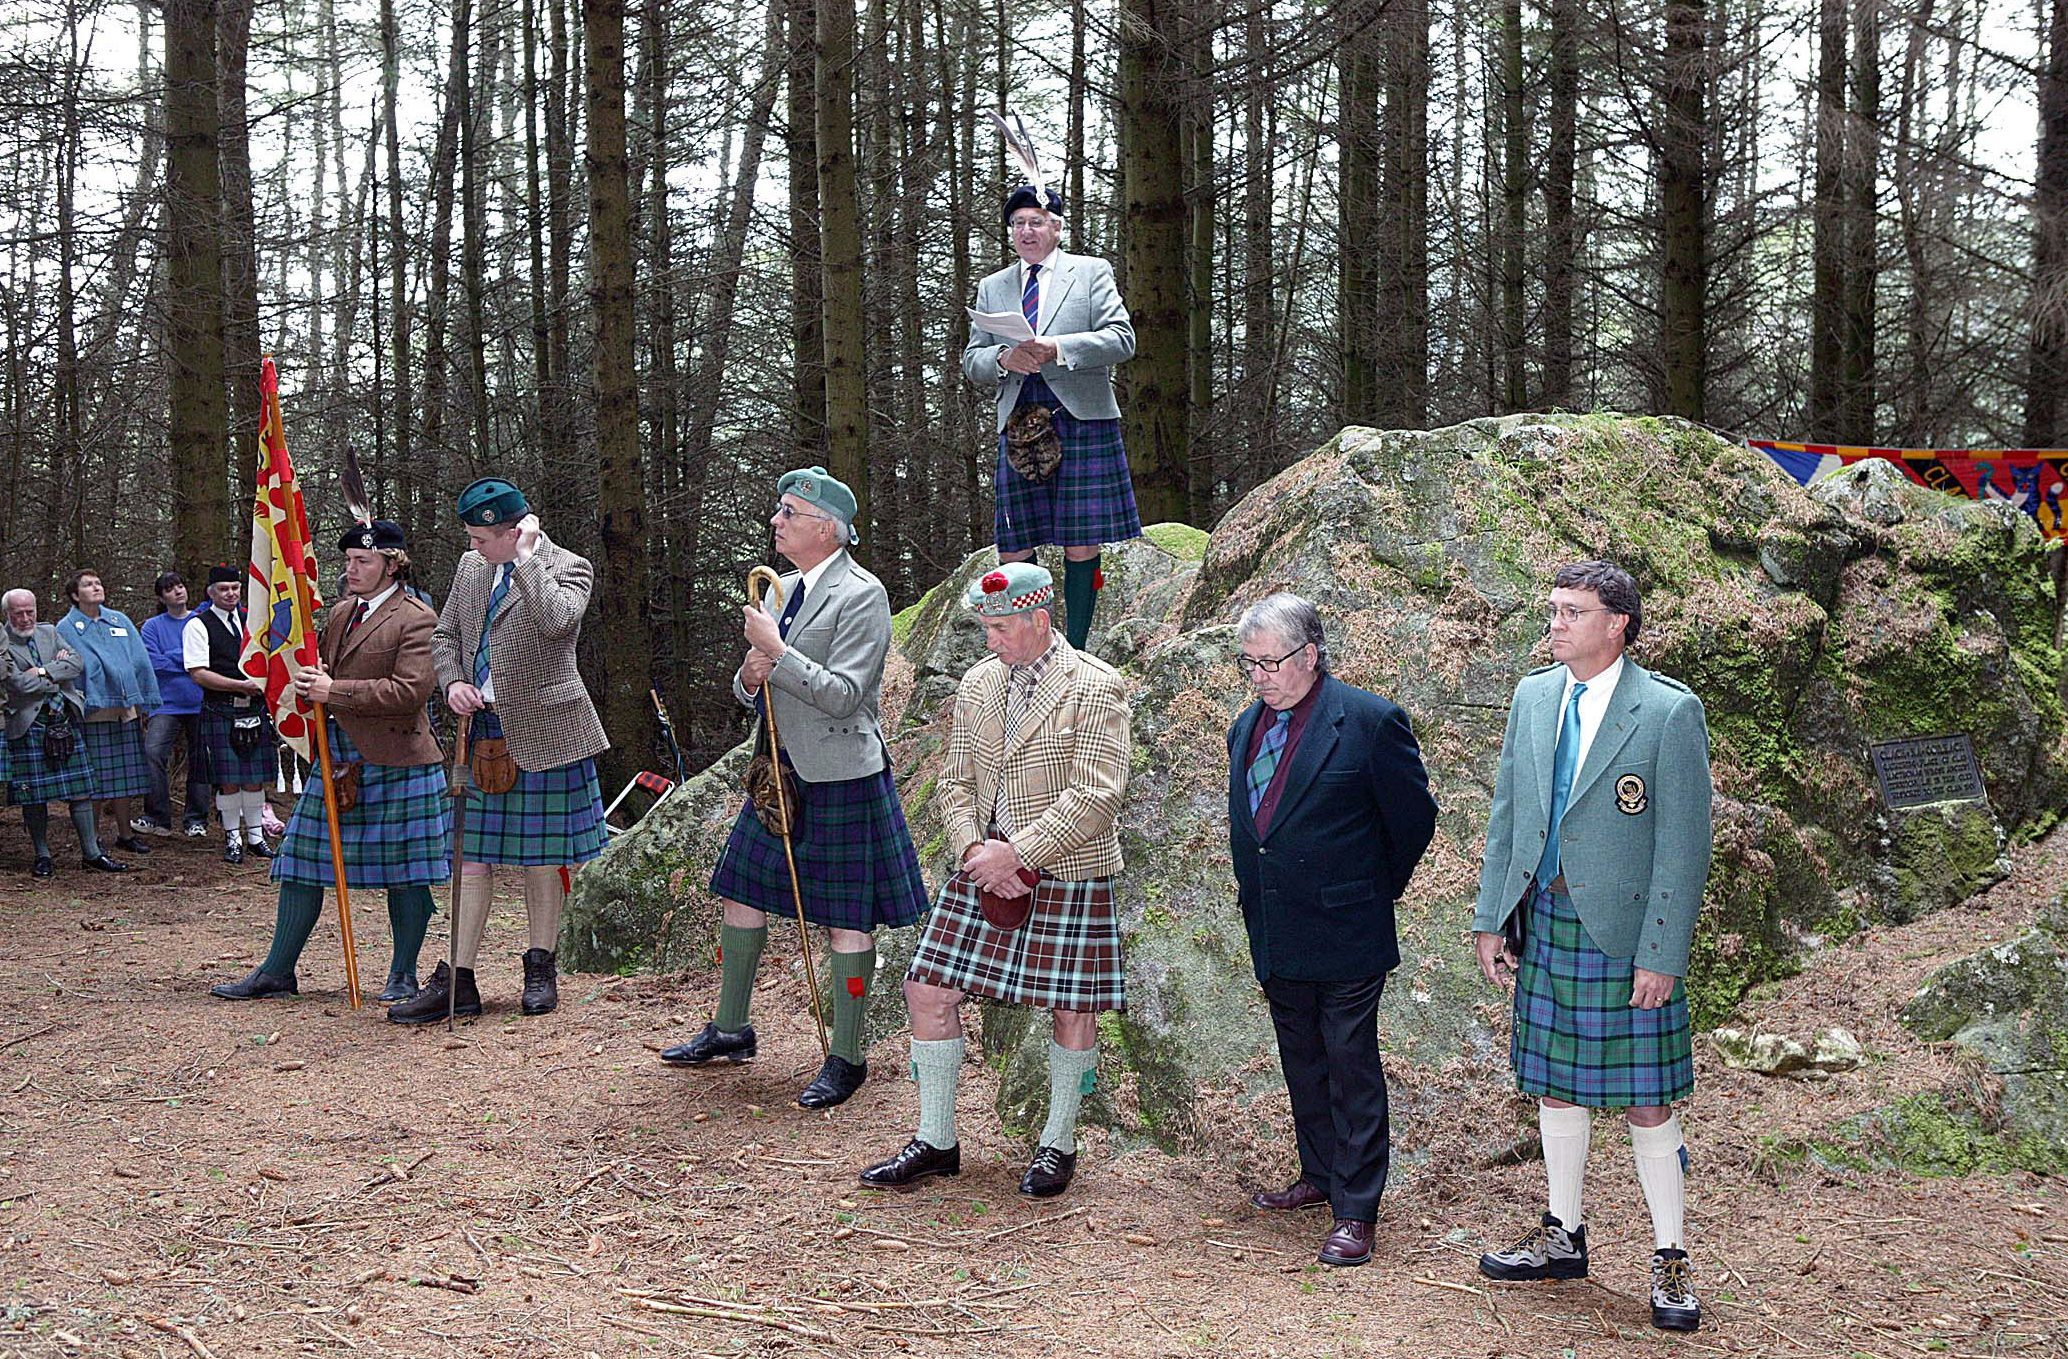 A previous gathering of the Clan MacThomas in Glenshee.